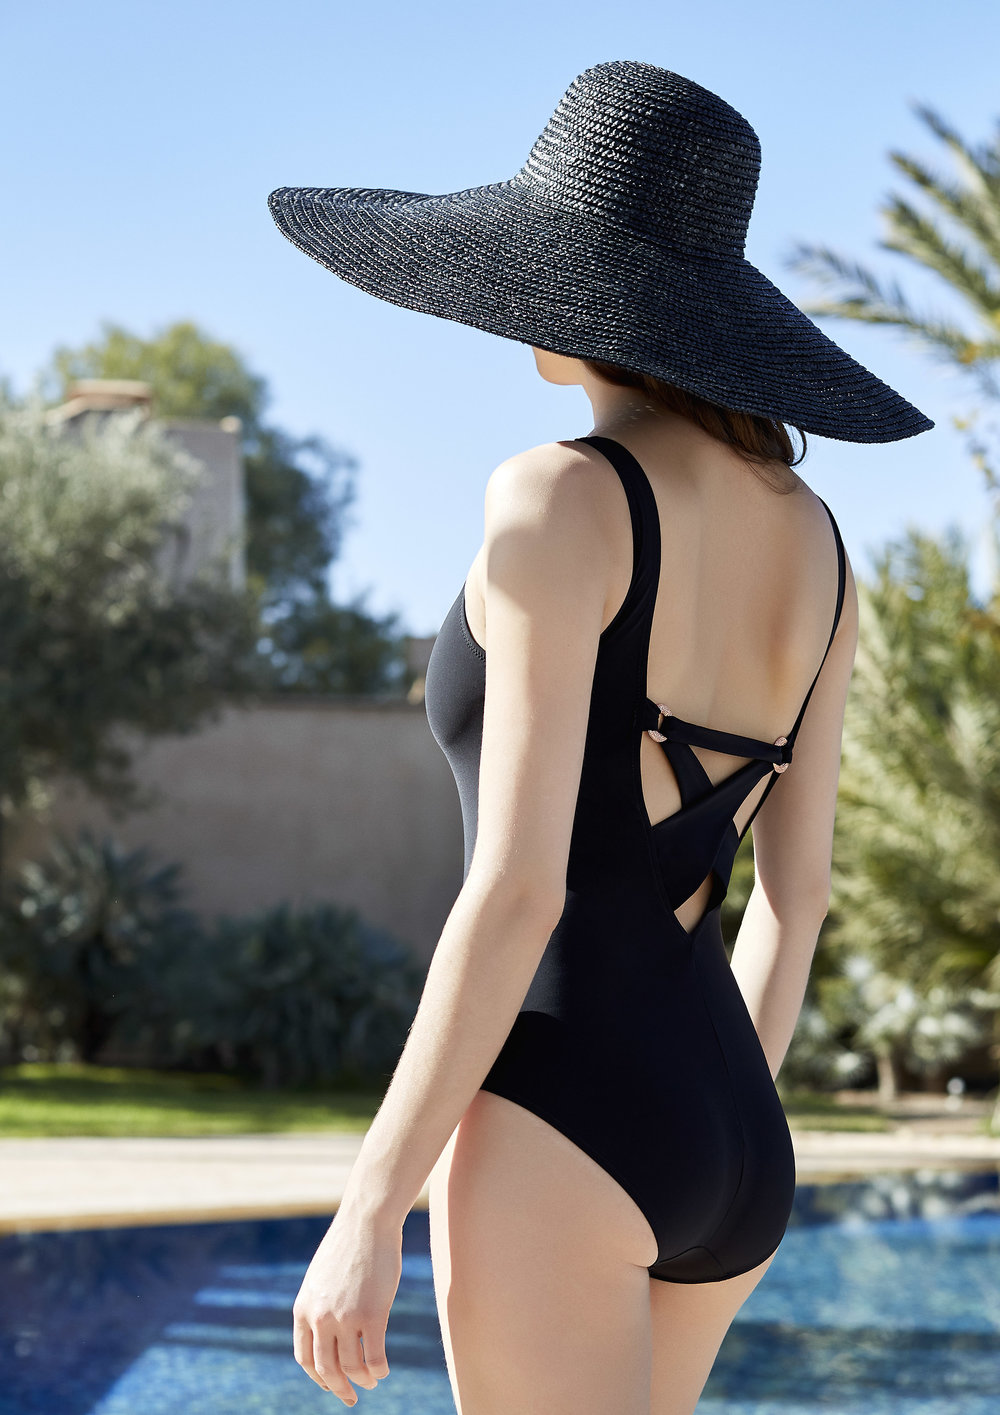 Bahamas one-piece, sizes 38 to 48 : $90